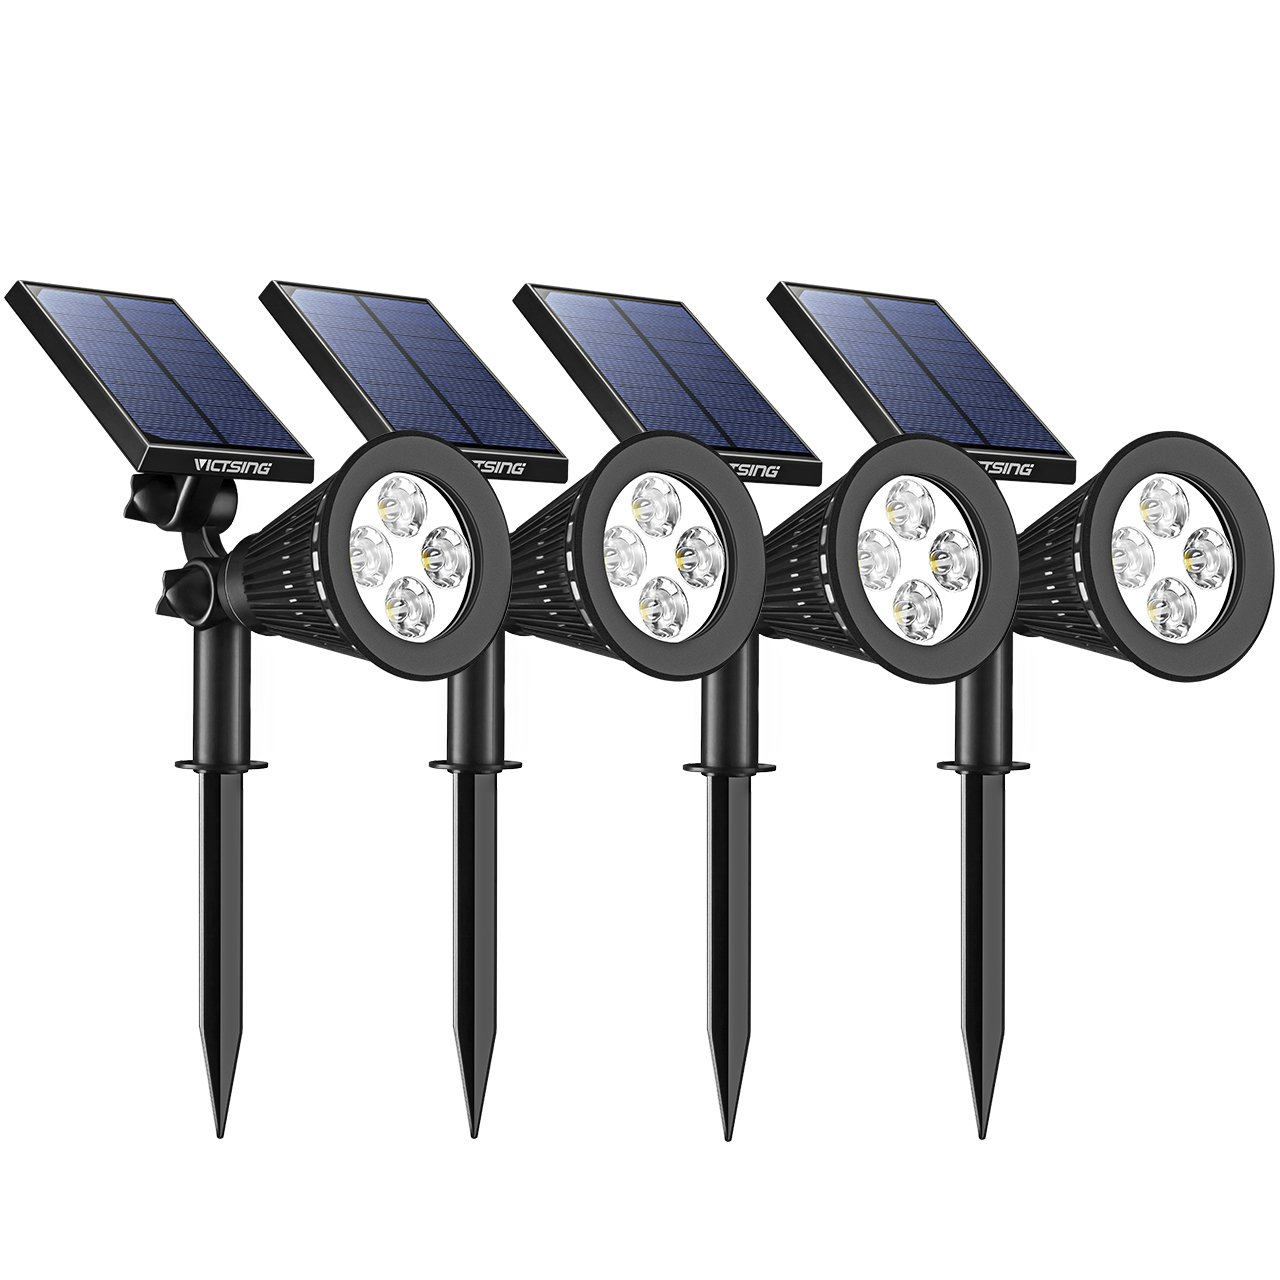 VicTsing 4Pcs 20 LED Solar Motion Sensor Lights, Super Bright Wireless Waterproof Outdoor Solar Powered Motion Activated Security Wall Light for Path,Porch,Deck, Driveway,Stairs, Garden